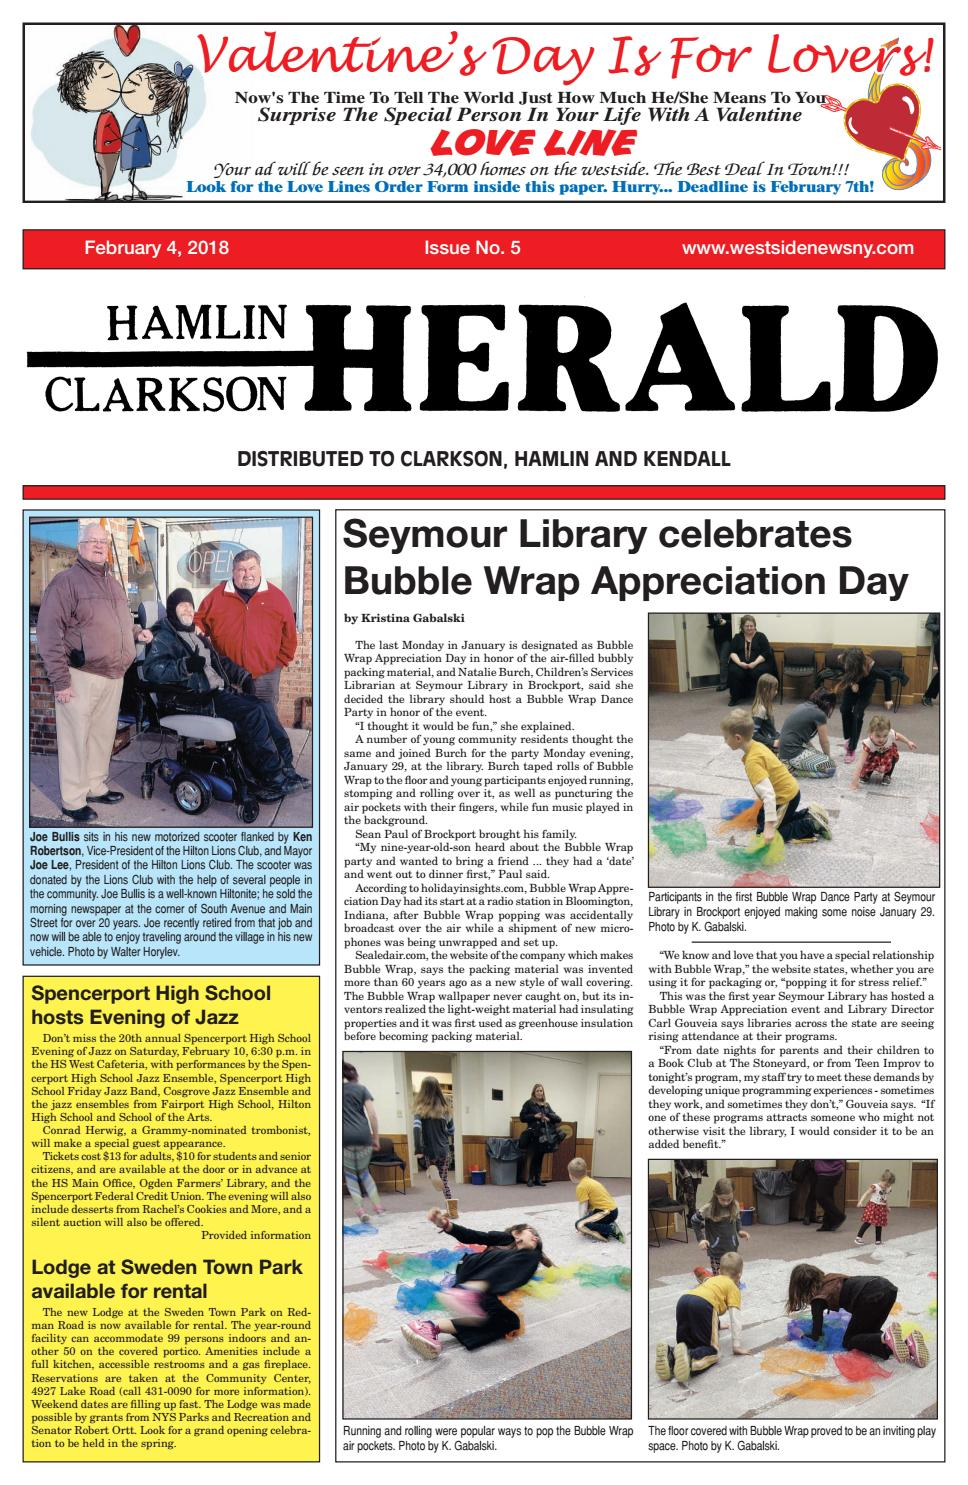 Hamlin Clarkson Herald February 4 2018 By Westside News Inc Issuu Bubble Wrap K